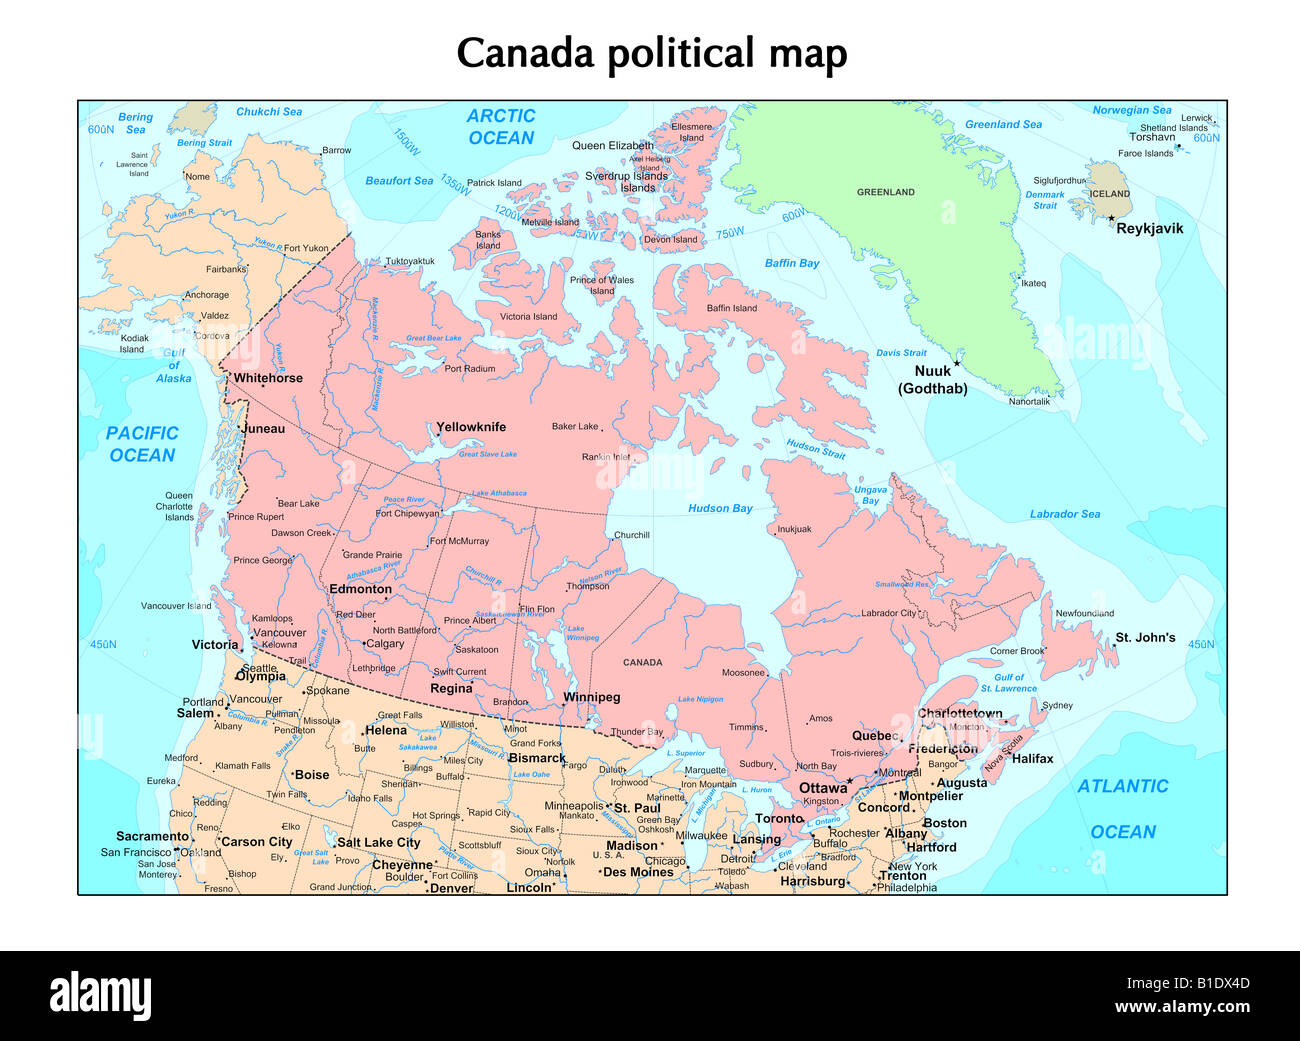 Picture of: Canada Political Map Stock Photo Alamy